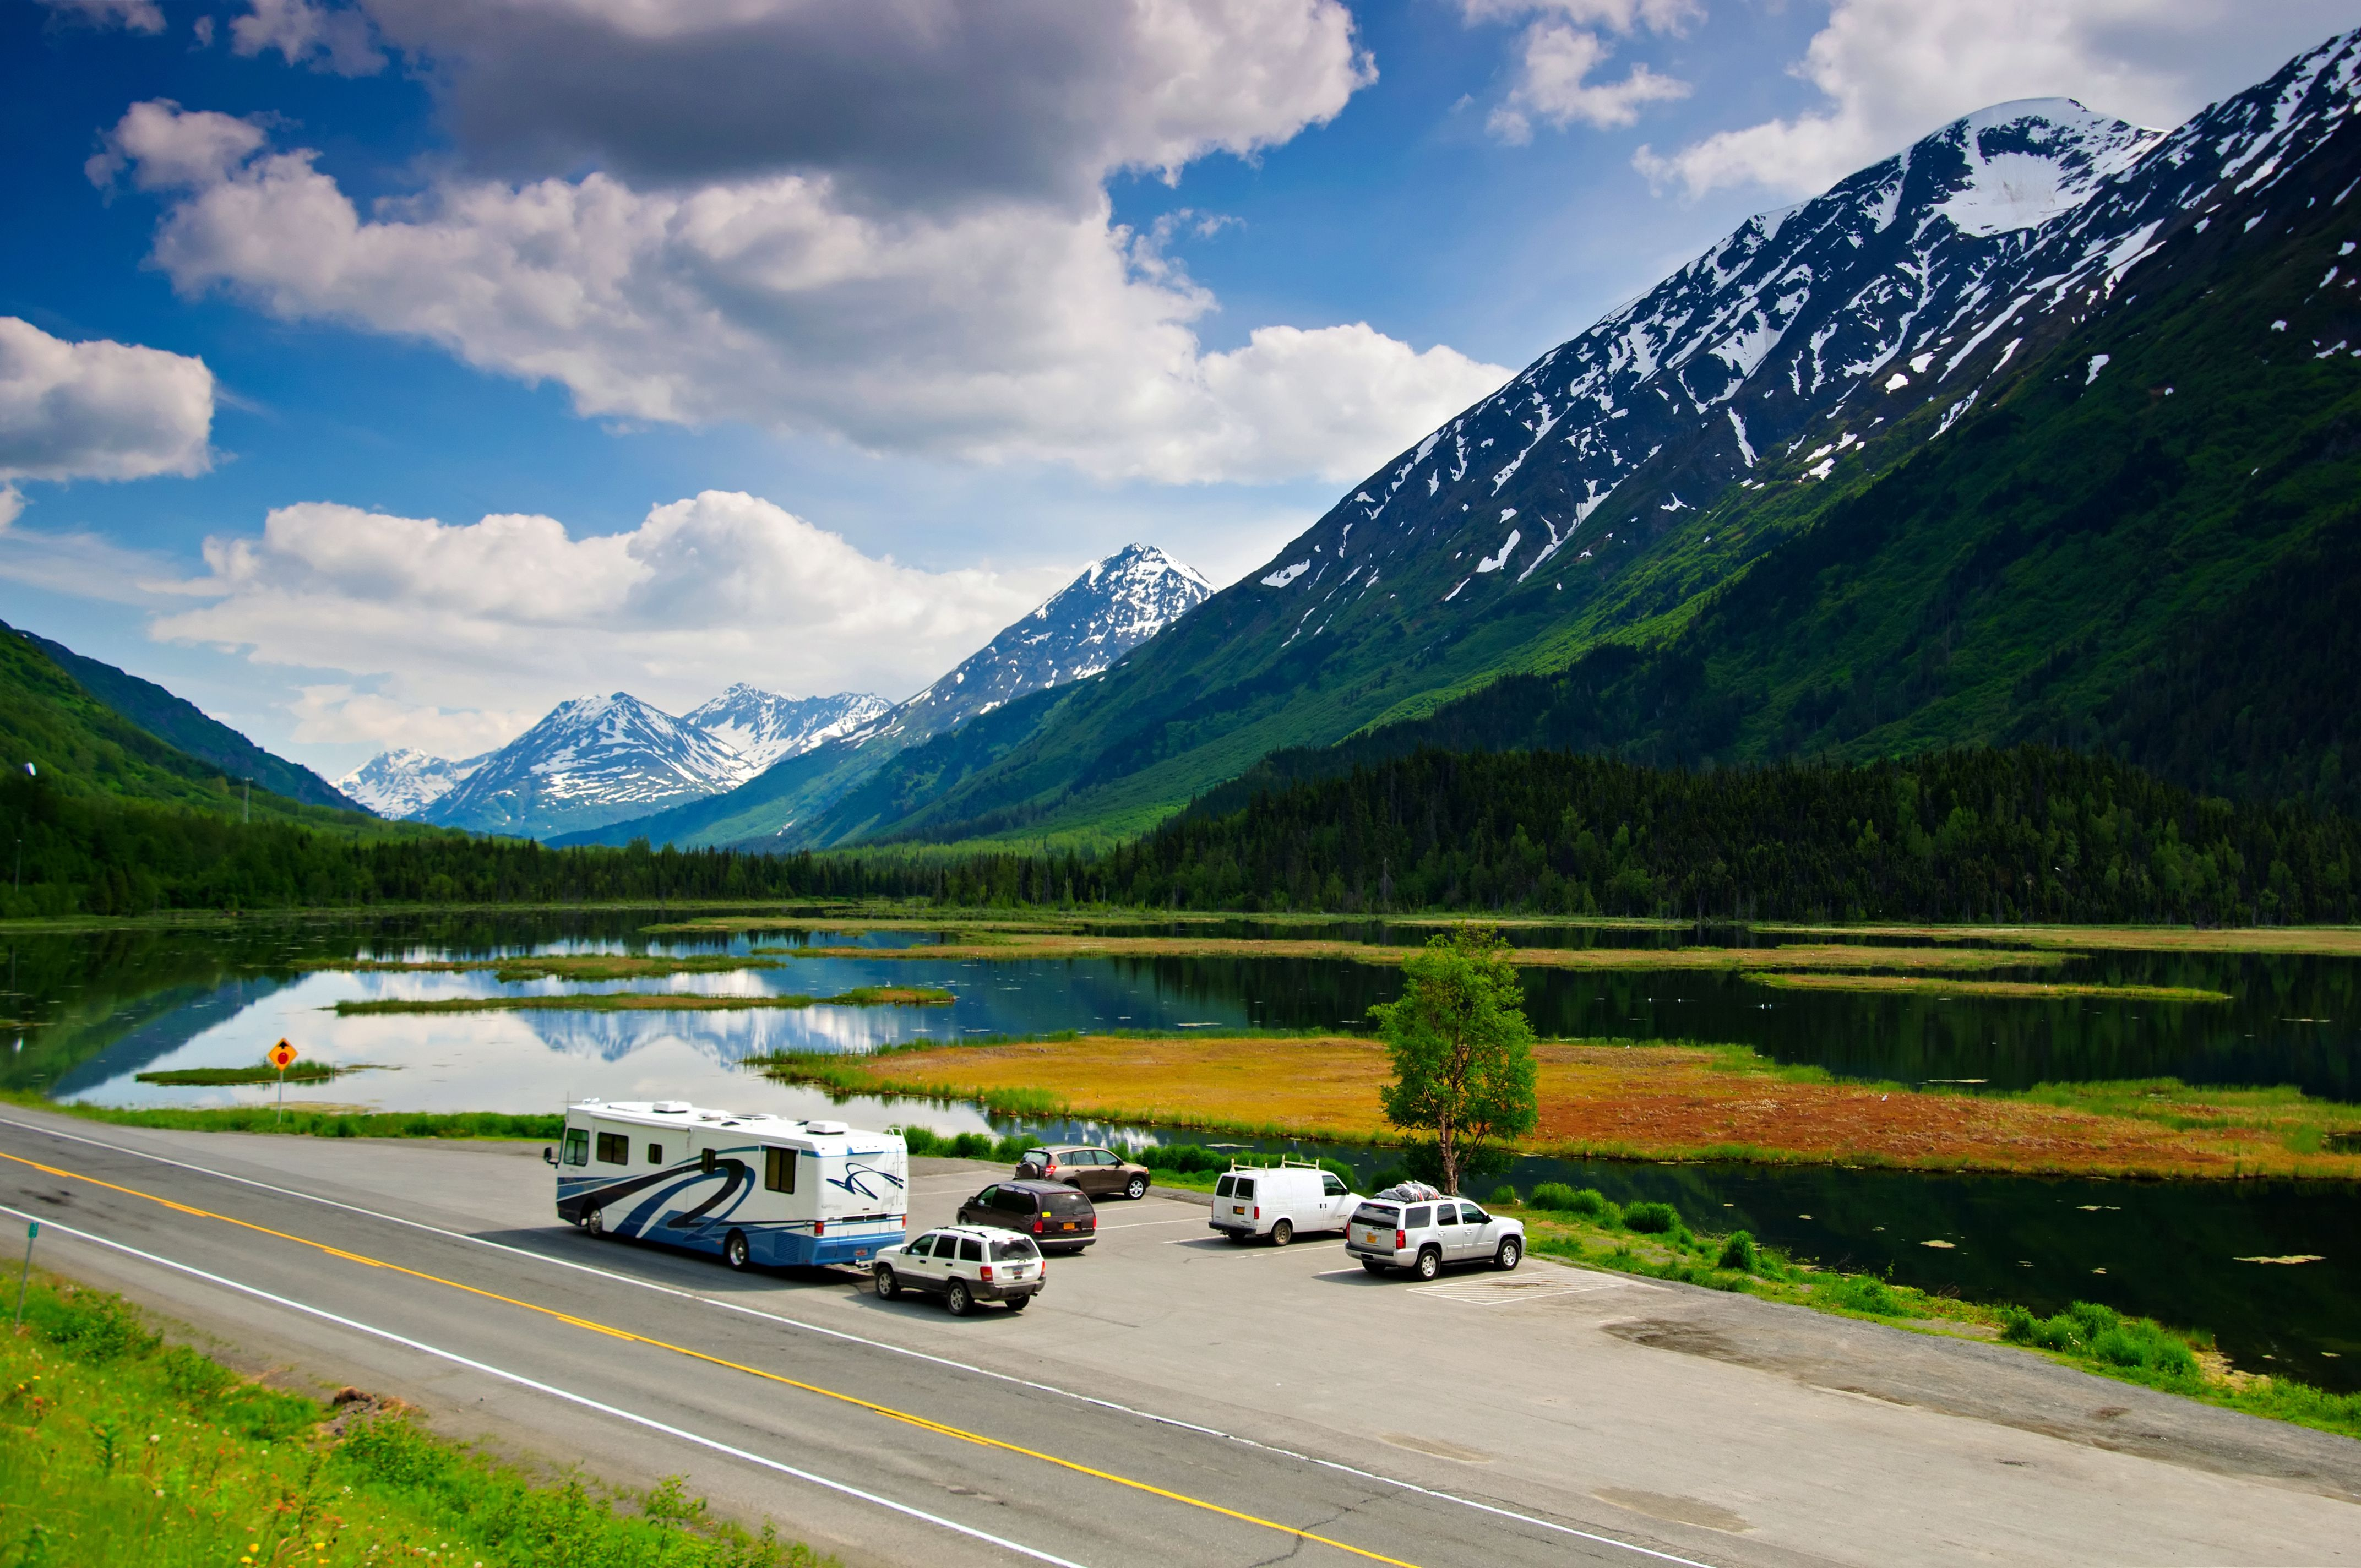 Looking For Alaska Setting: Your Guide To RVing In Alaska